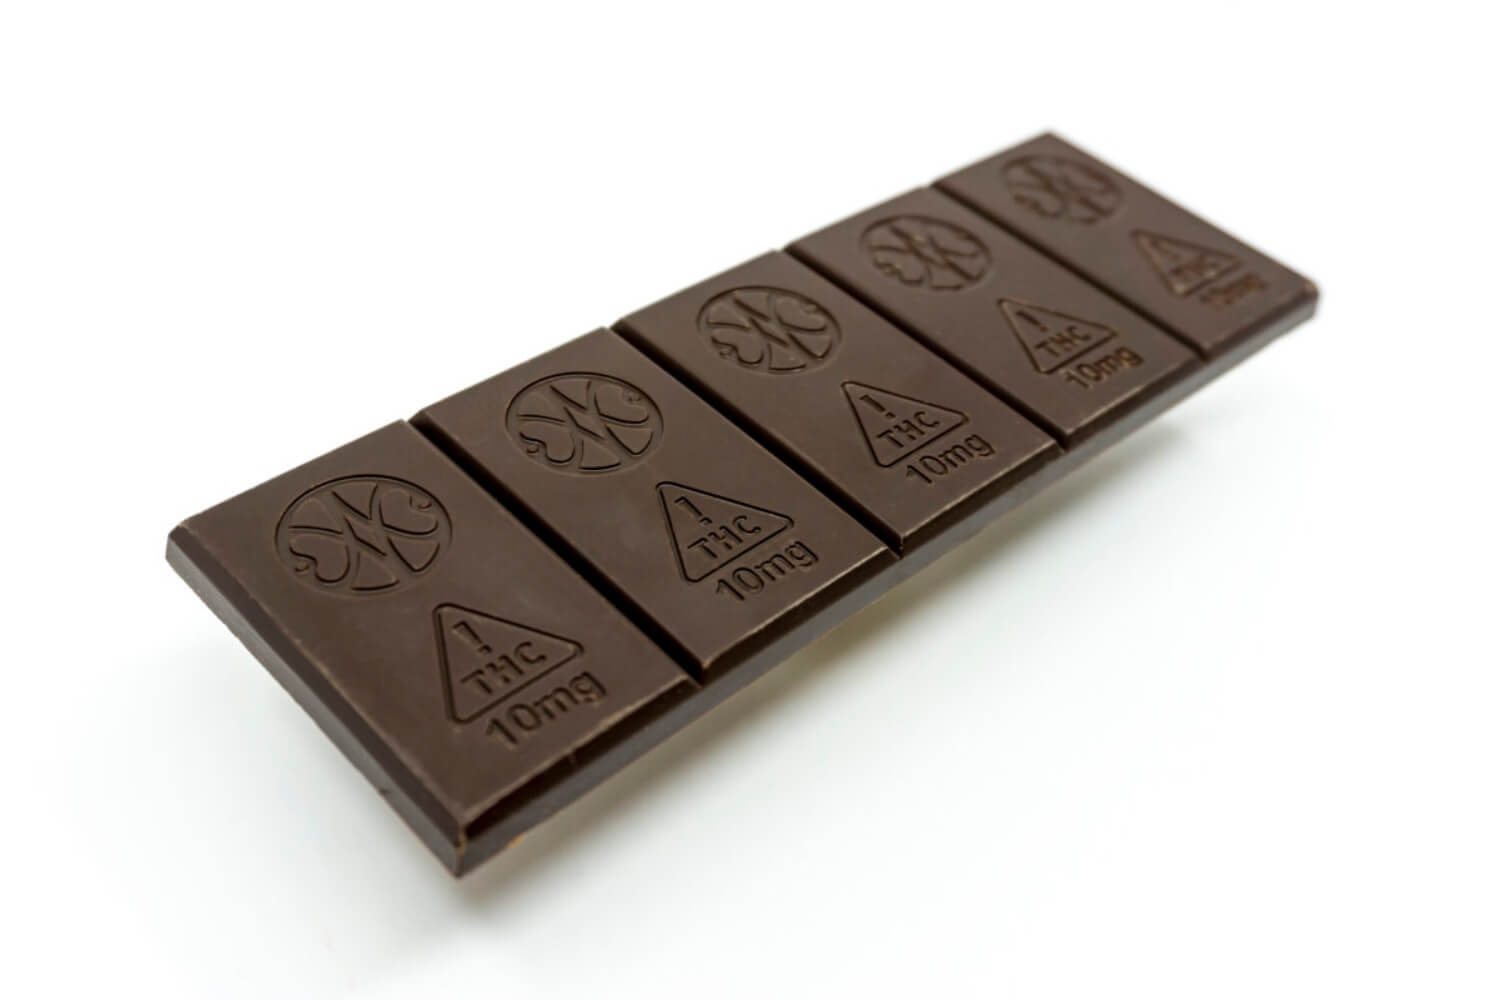 Valhalla dark chocolate bar